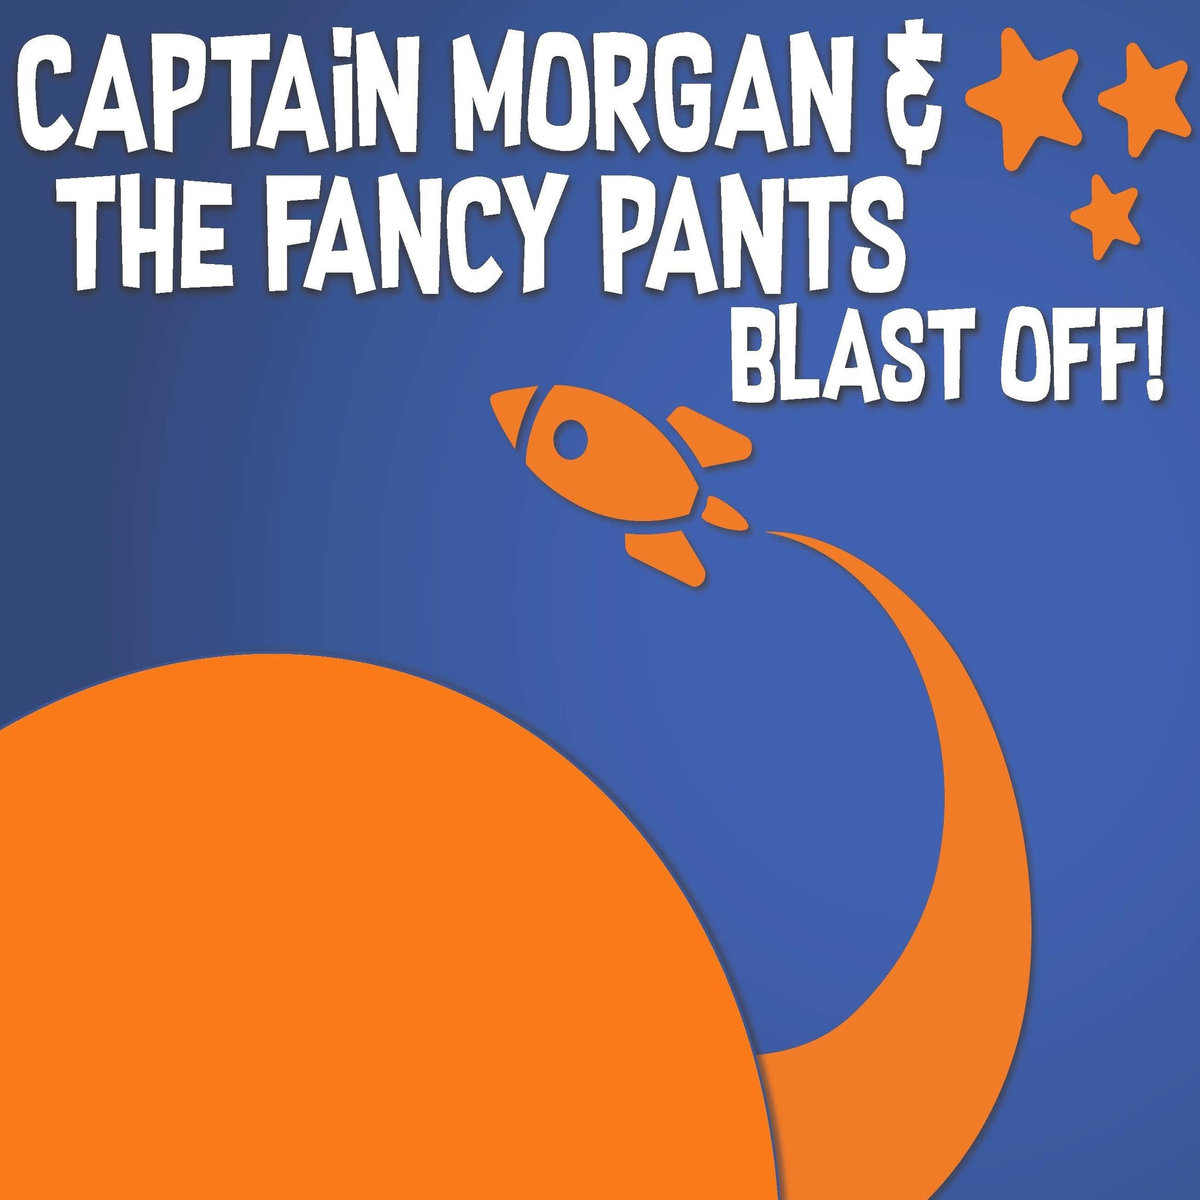 Captain Morgan & the Fancy Pants - Blast Off!